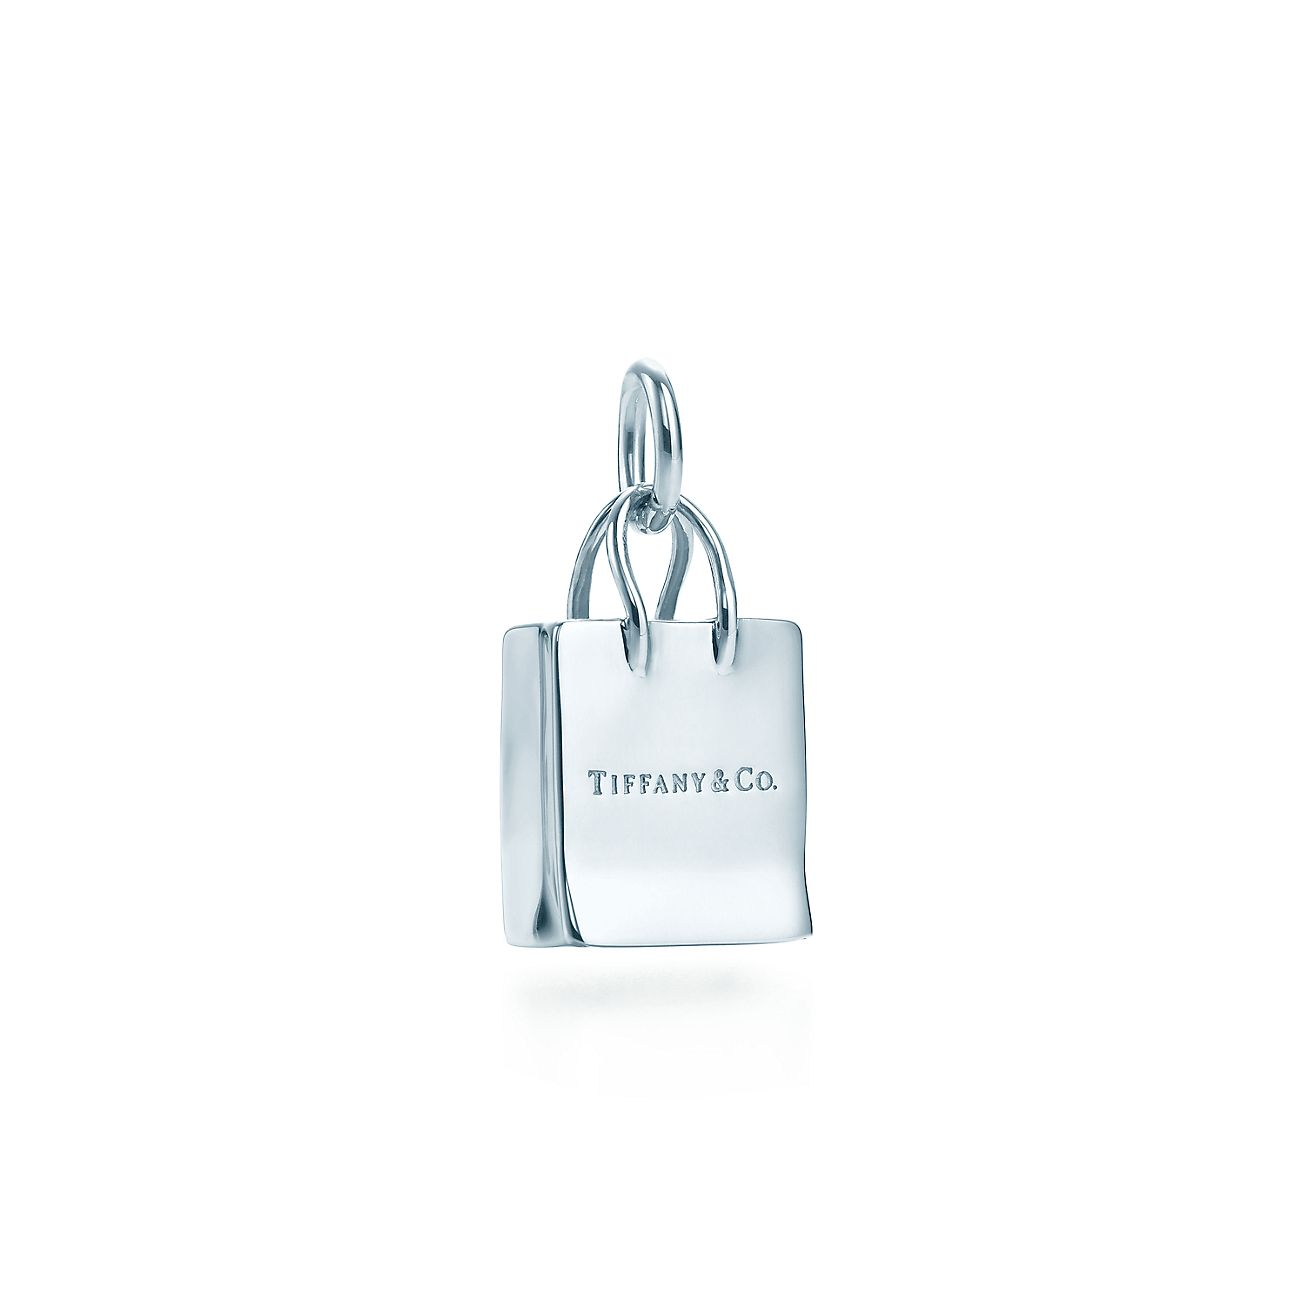 Tiffany & Co.® shopping bag charm in sterling silver. | Tiffany & Co.